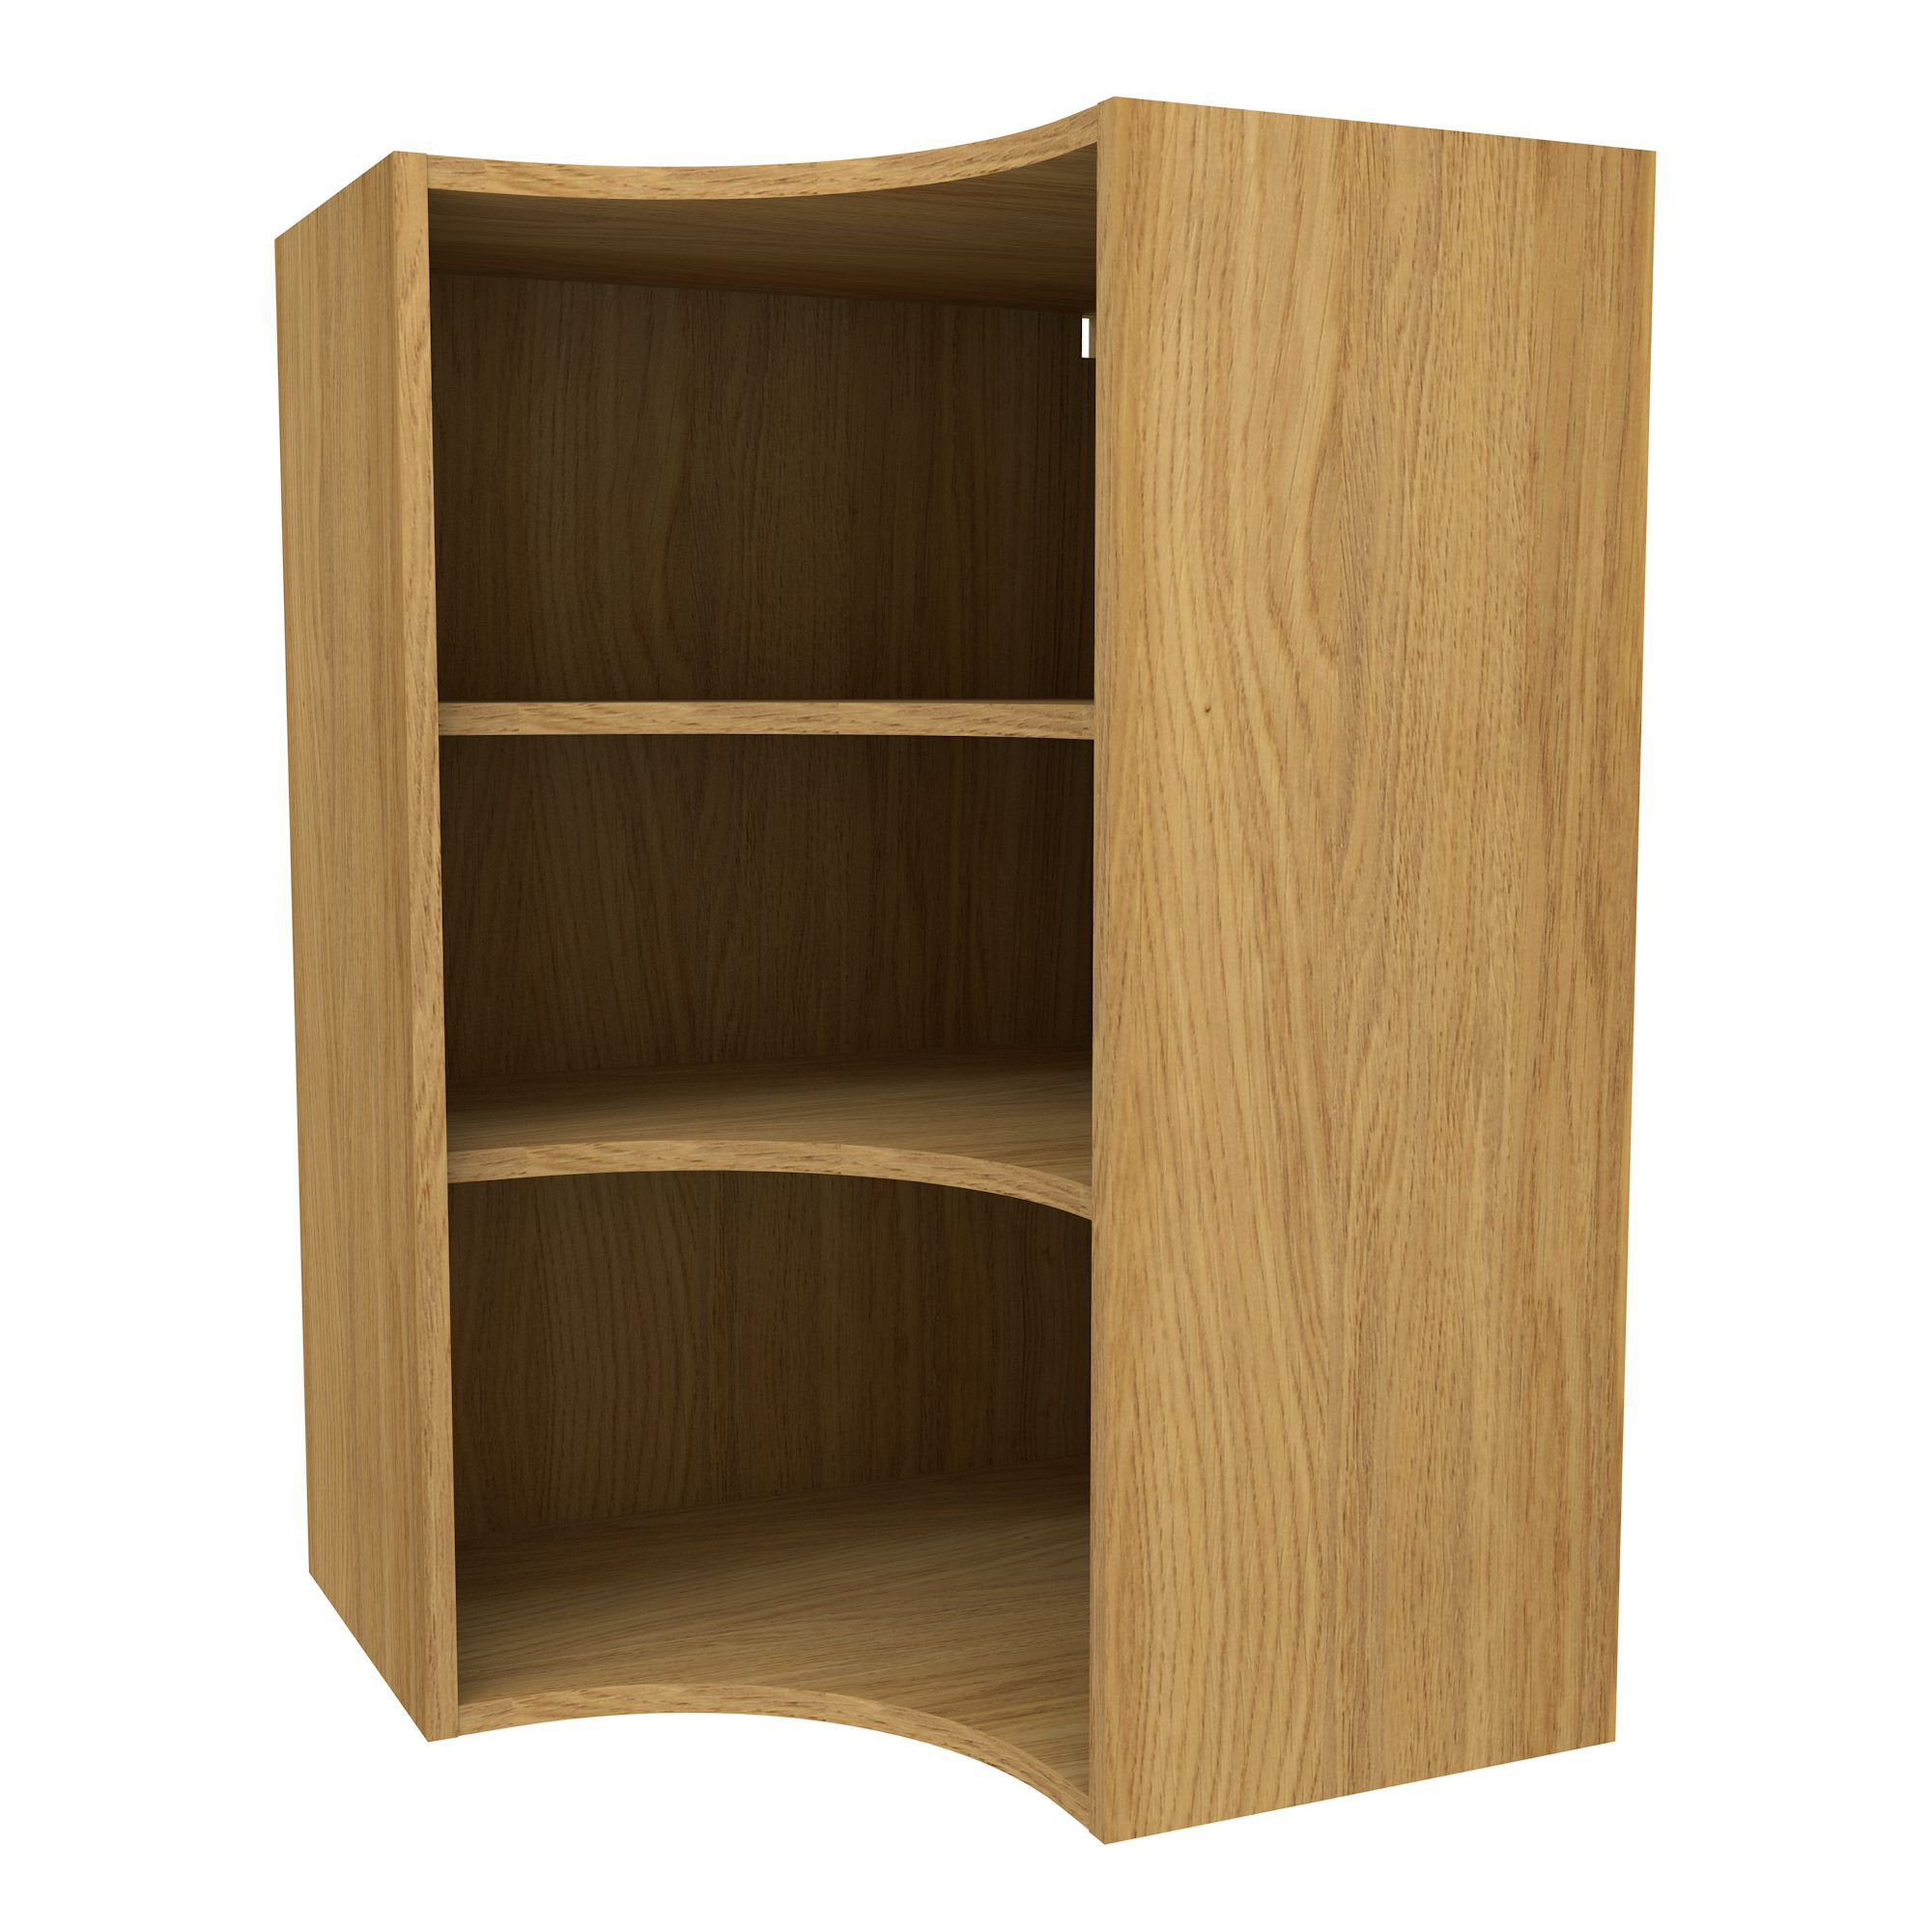 Cooke & Lewis Oak Effect Curved Corner Tall Wall Cabinet